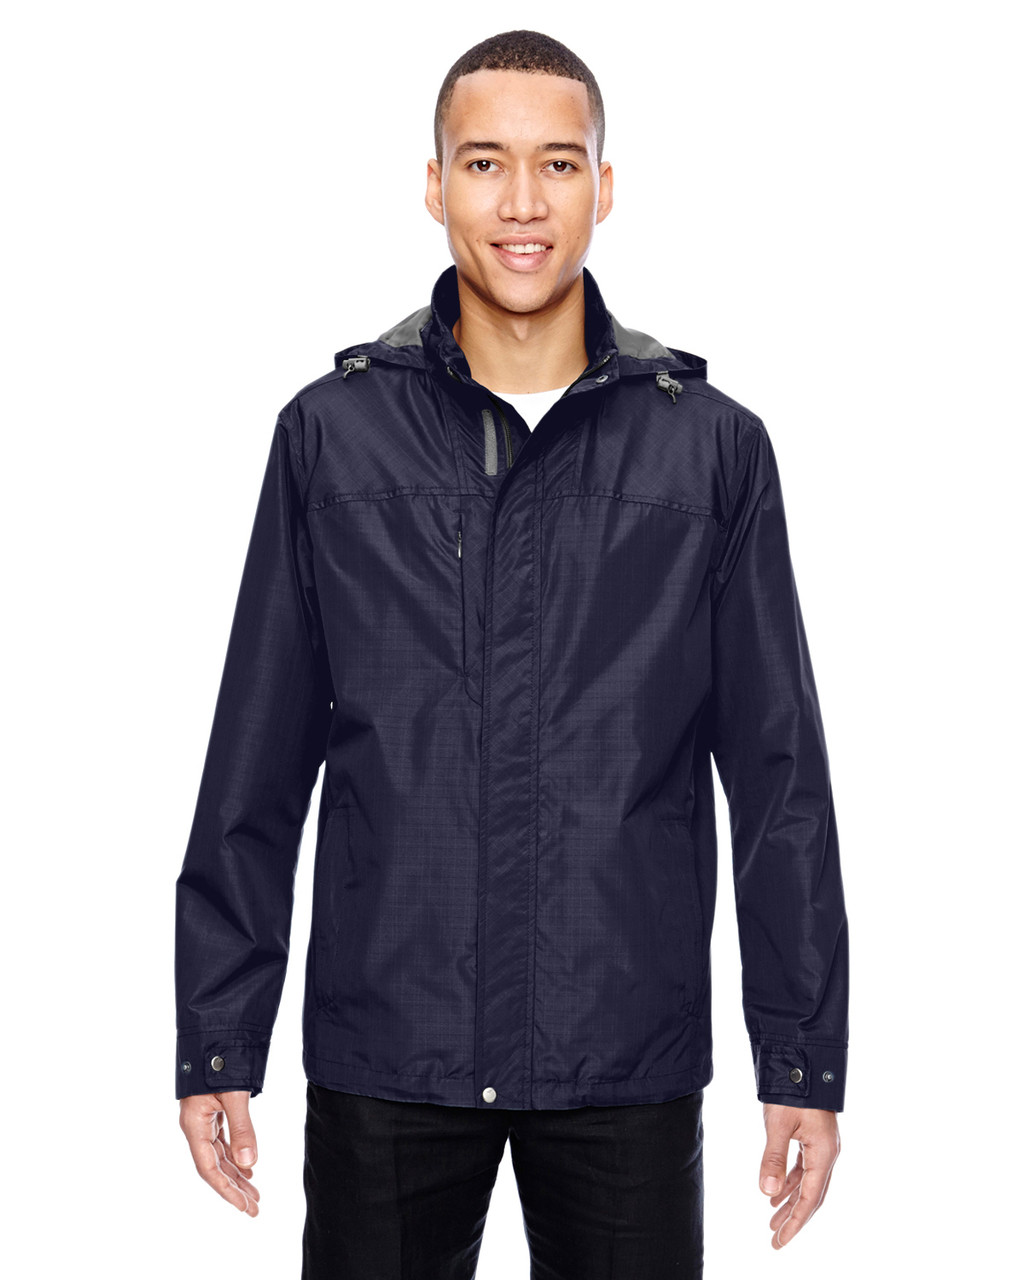 Navy - 88216 North End Excursion Transcon Lightweight Jacket with Pattern   Blankclothing.ca